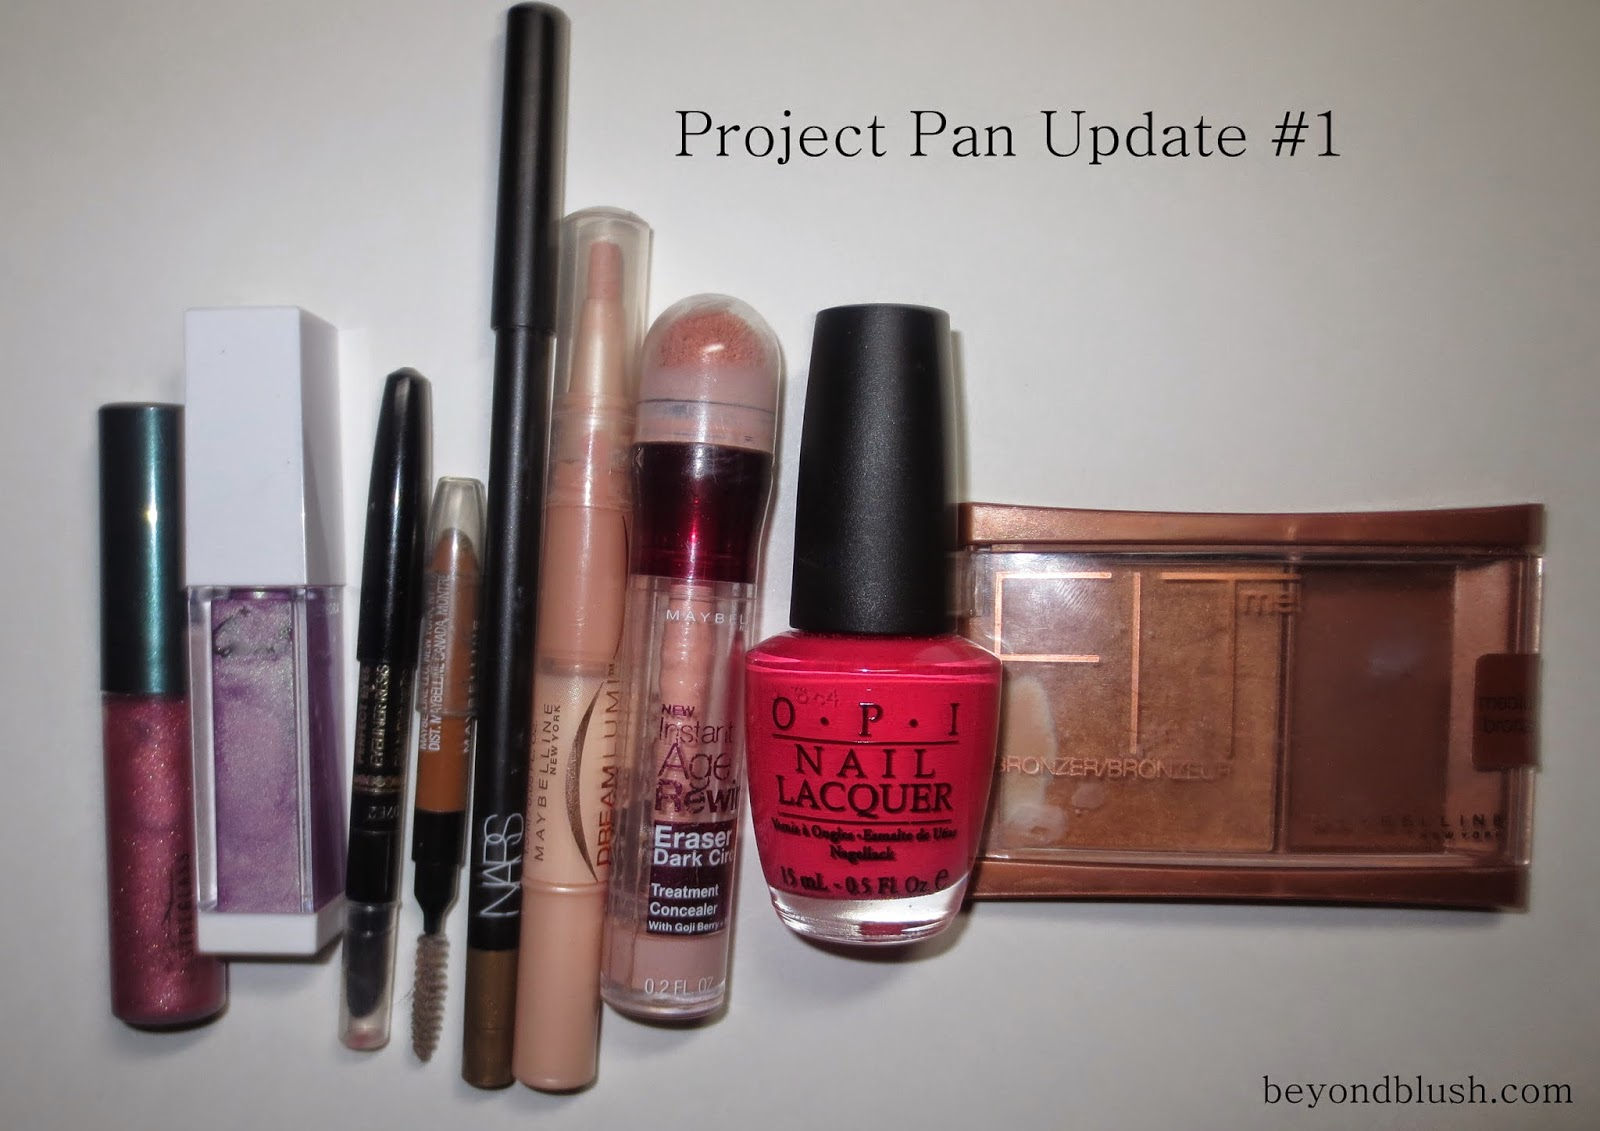 Project Pan Update #1